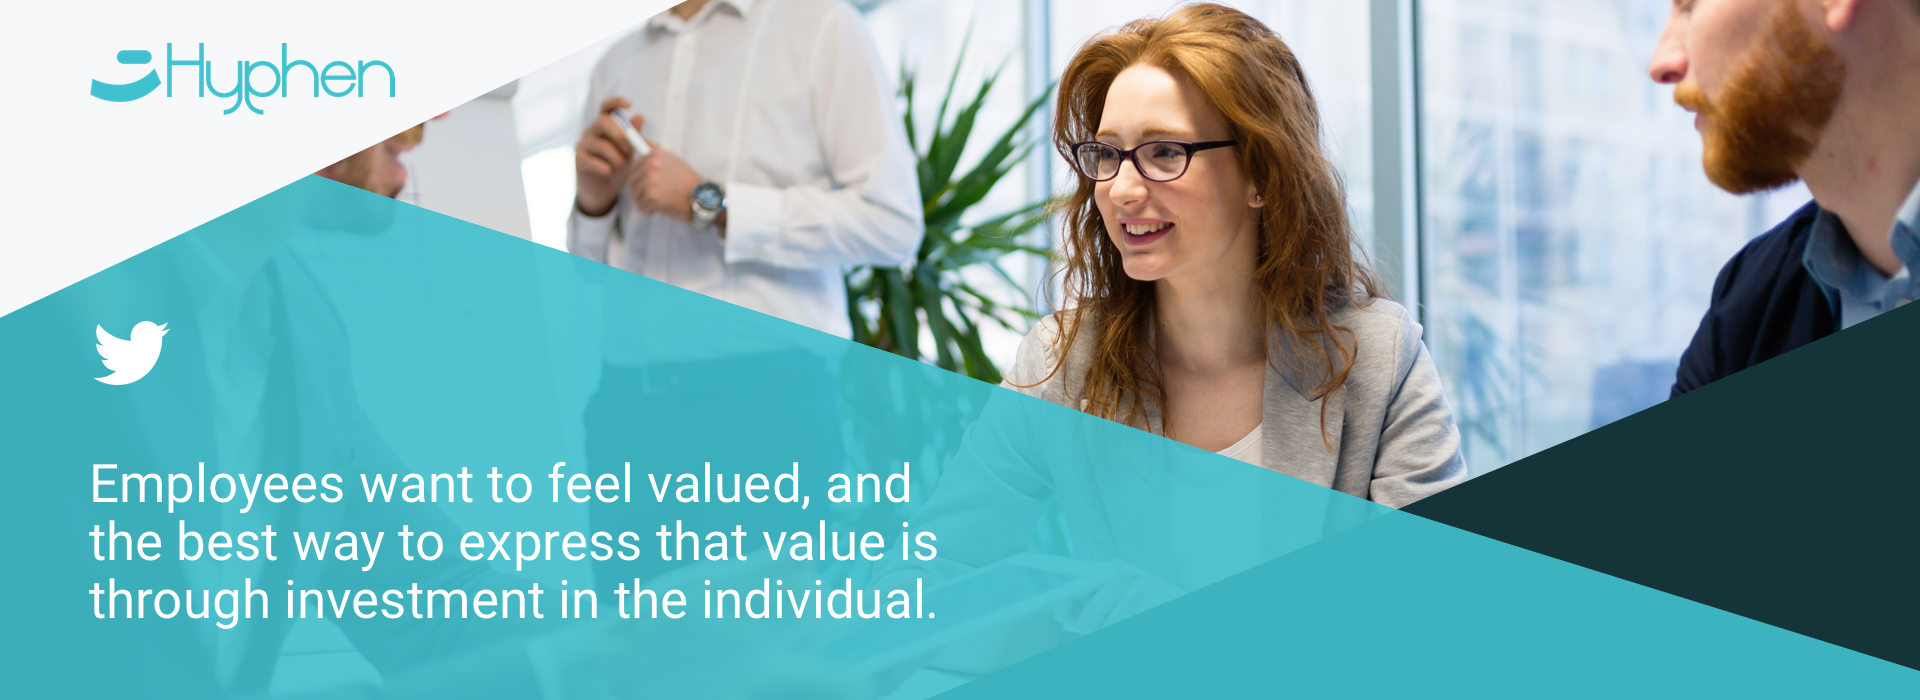 """Employees want to feel valued, and the best way to express that value is through investment in the individual,"""